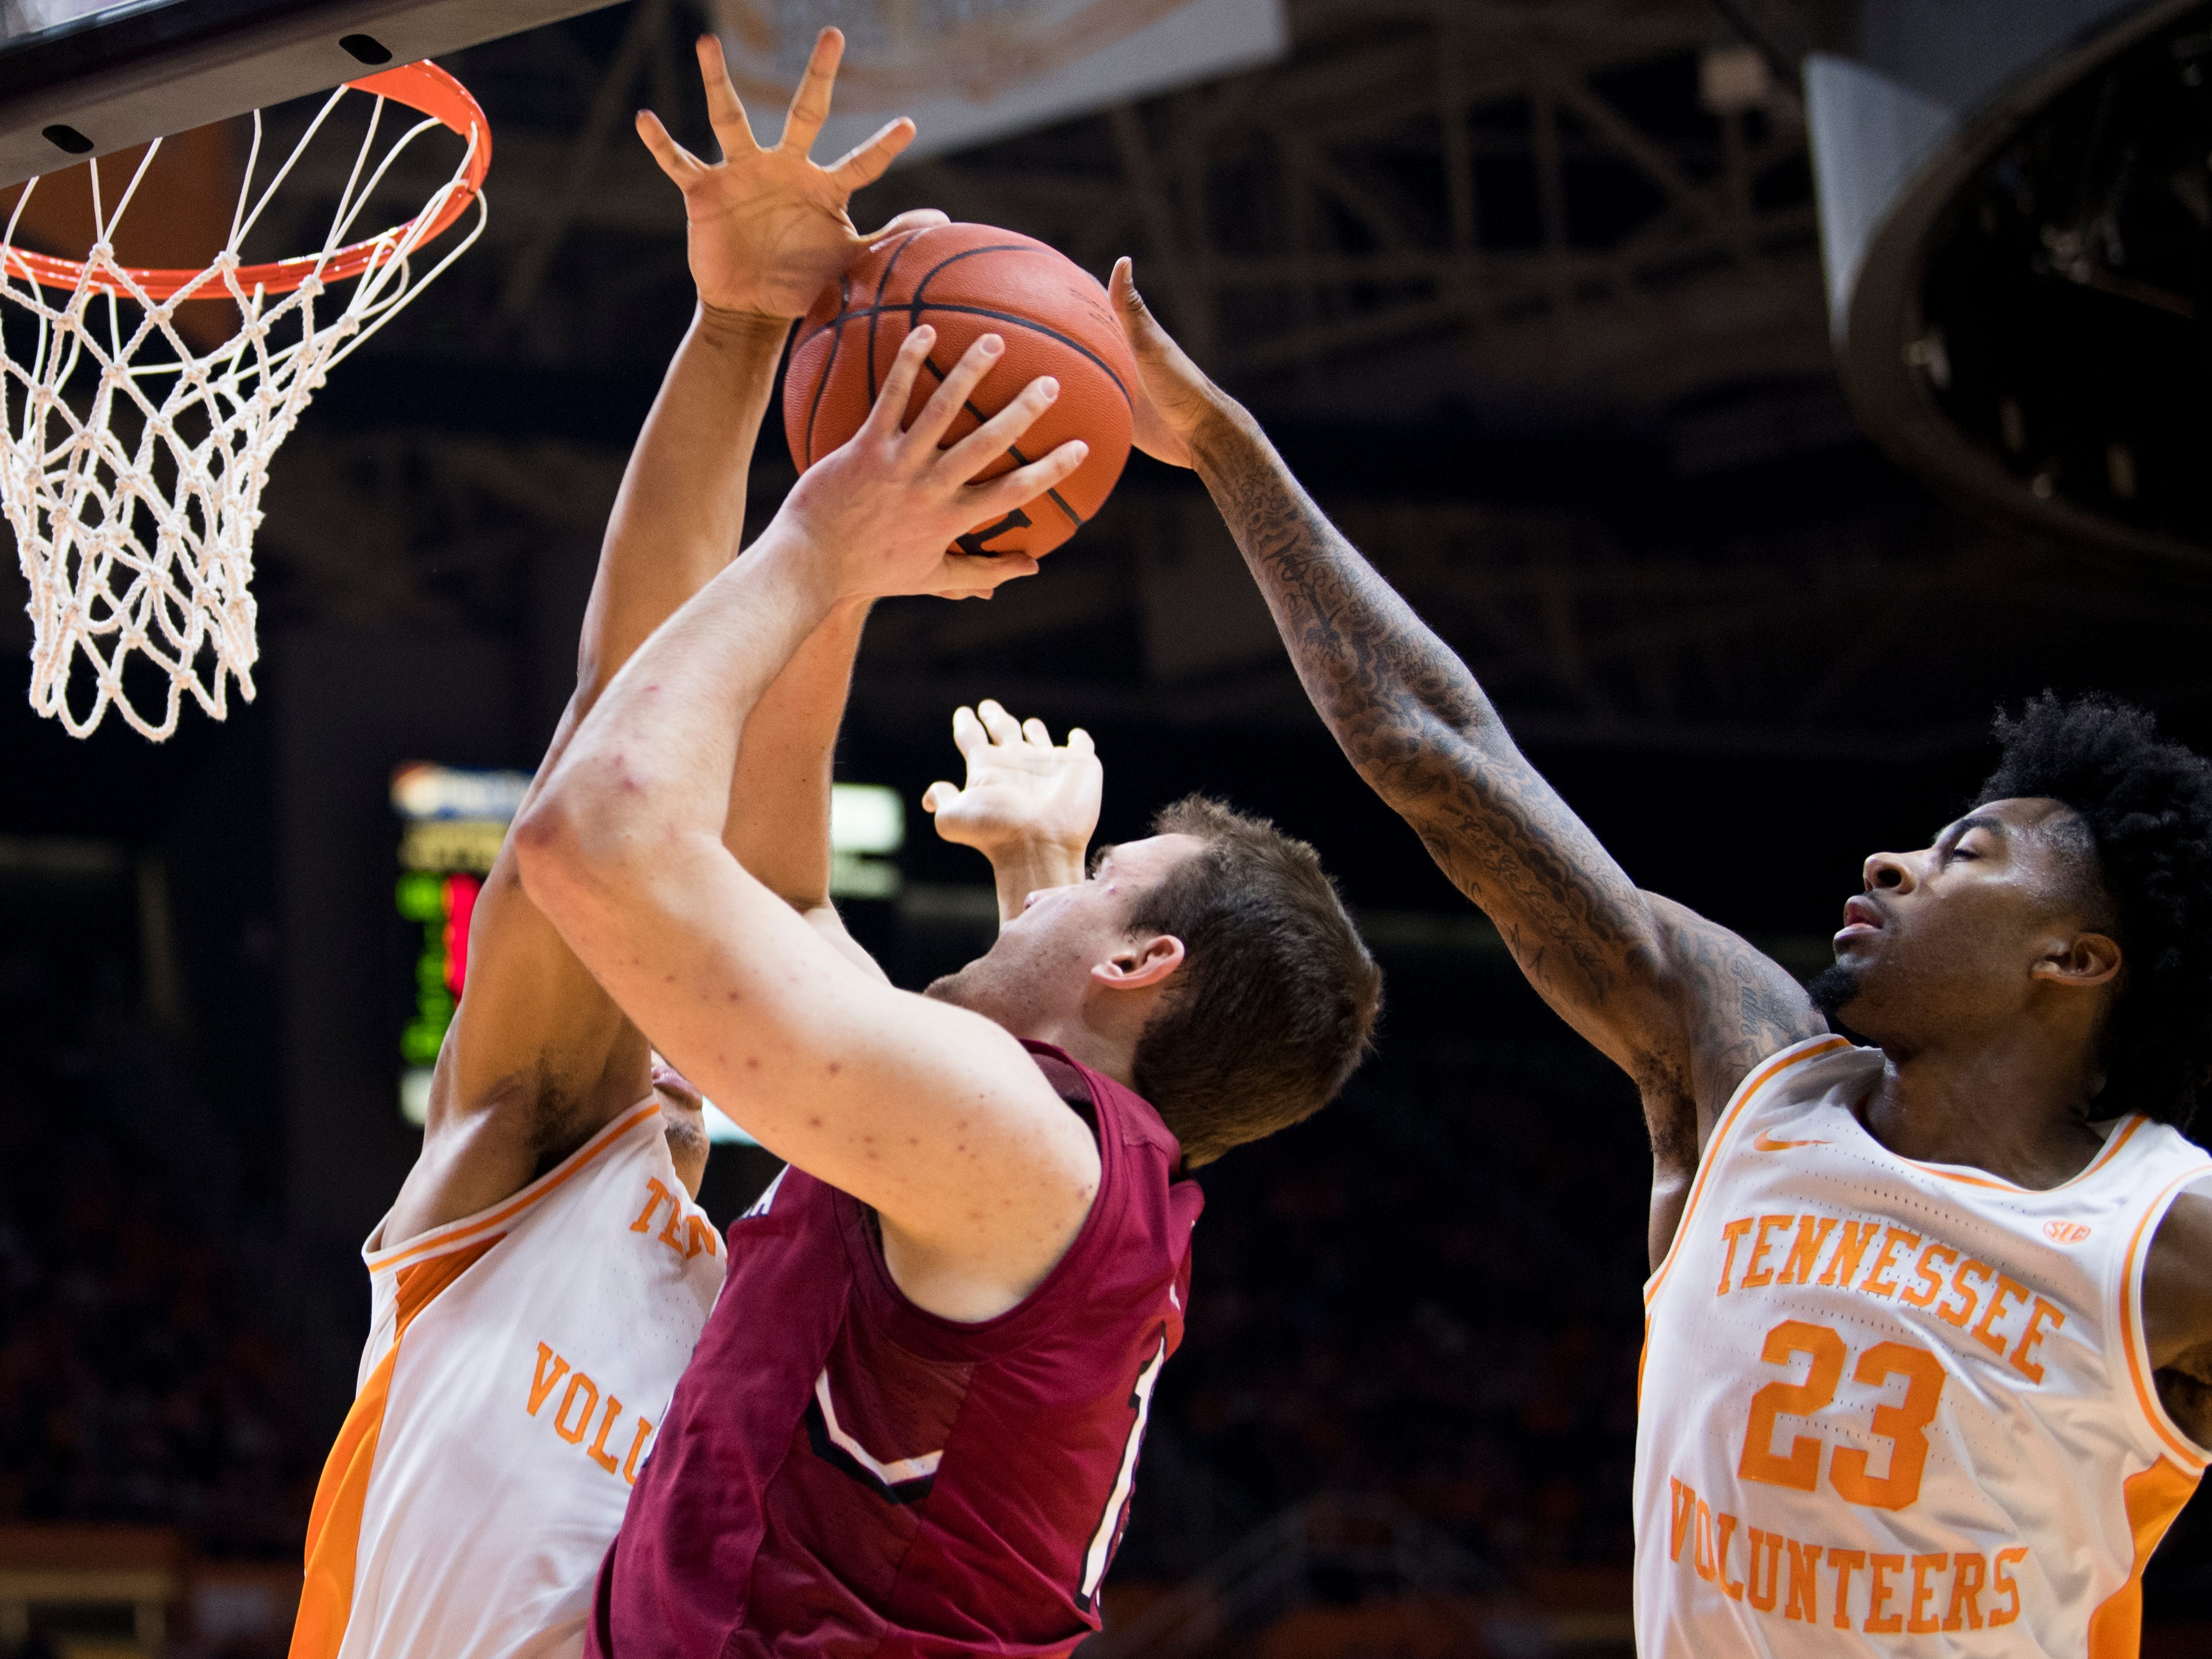 Tennessee forward Grant Williams (2) and Tennessee guard Jordan Bowden (23) defends South Carolina forward Felipe Haase (13) during Tennessee's home SEC game against South Carolina at Thompson-Boling Arena in Knoxville on Wednesday, February 13, 2019.